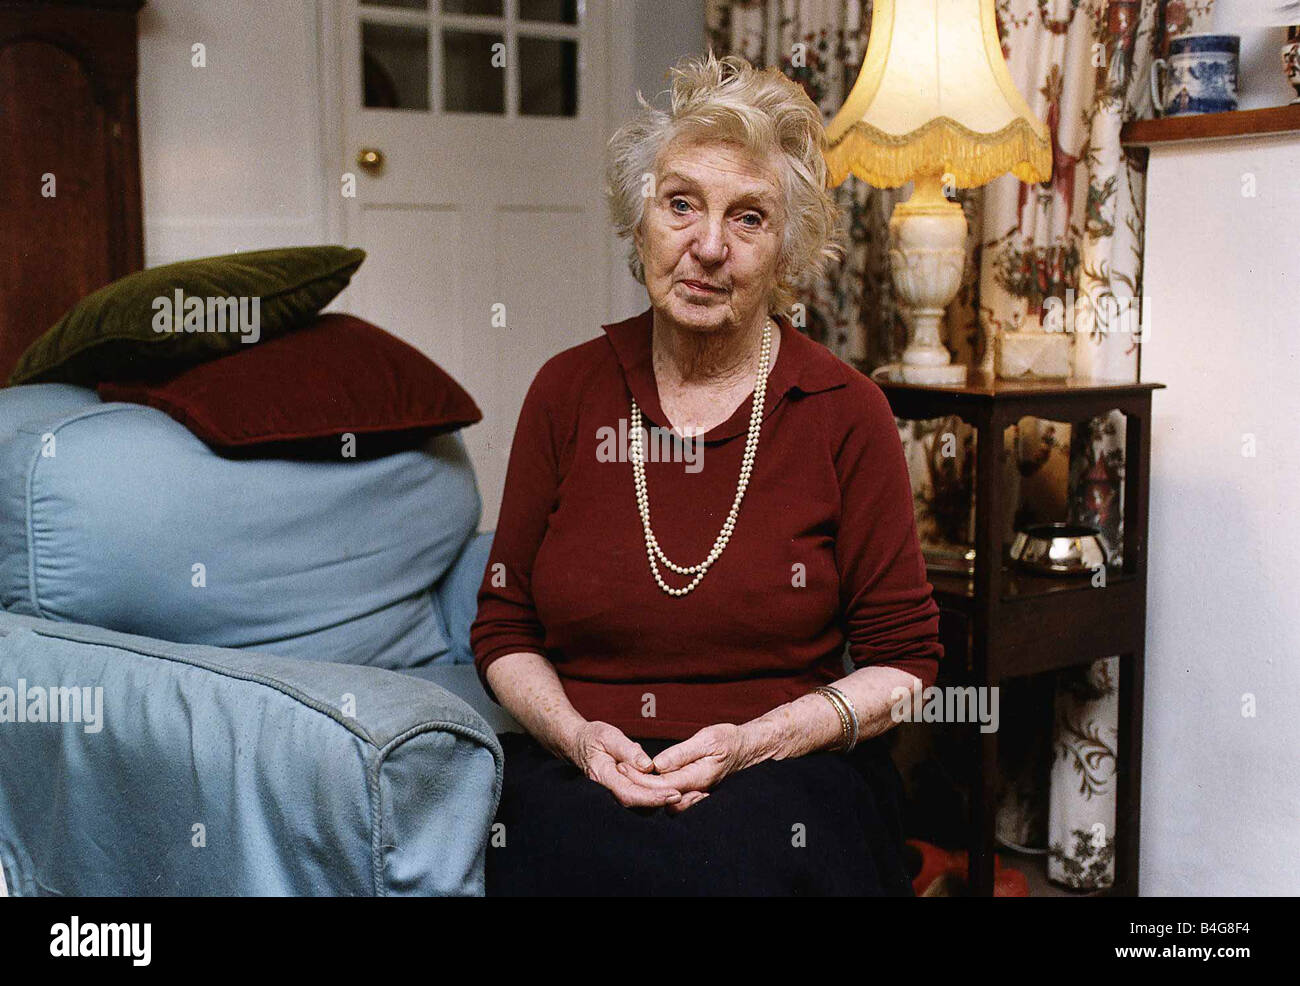 joan hickson miss marple full episodesjoan hickson young, joan hickson miss marple, joan hickson family, joan hickson, joan hickson miss marple episodes, joan hickson imdb, joan hickson miss marple full episodes, joan hickson miss marple youtube, joan hickson photos, joan hickson daughter, joan hickson interview, joan hickson actress, joan hickson miss marple episodes youtube, joan hickson body in the library, joan hickson the moving finger, joan hickson miss marple watch online, joan hickson actress photos, joan hickson wikipedia, joan hickson grave, joan hickson son and daughter